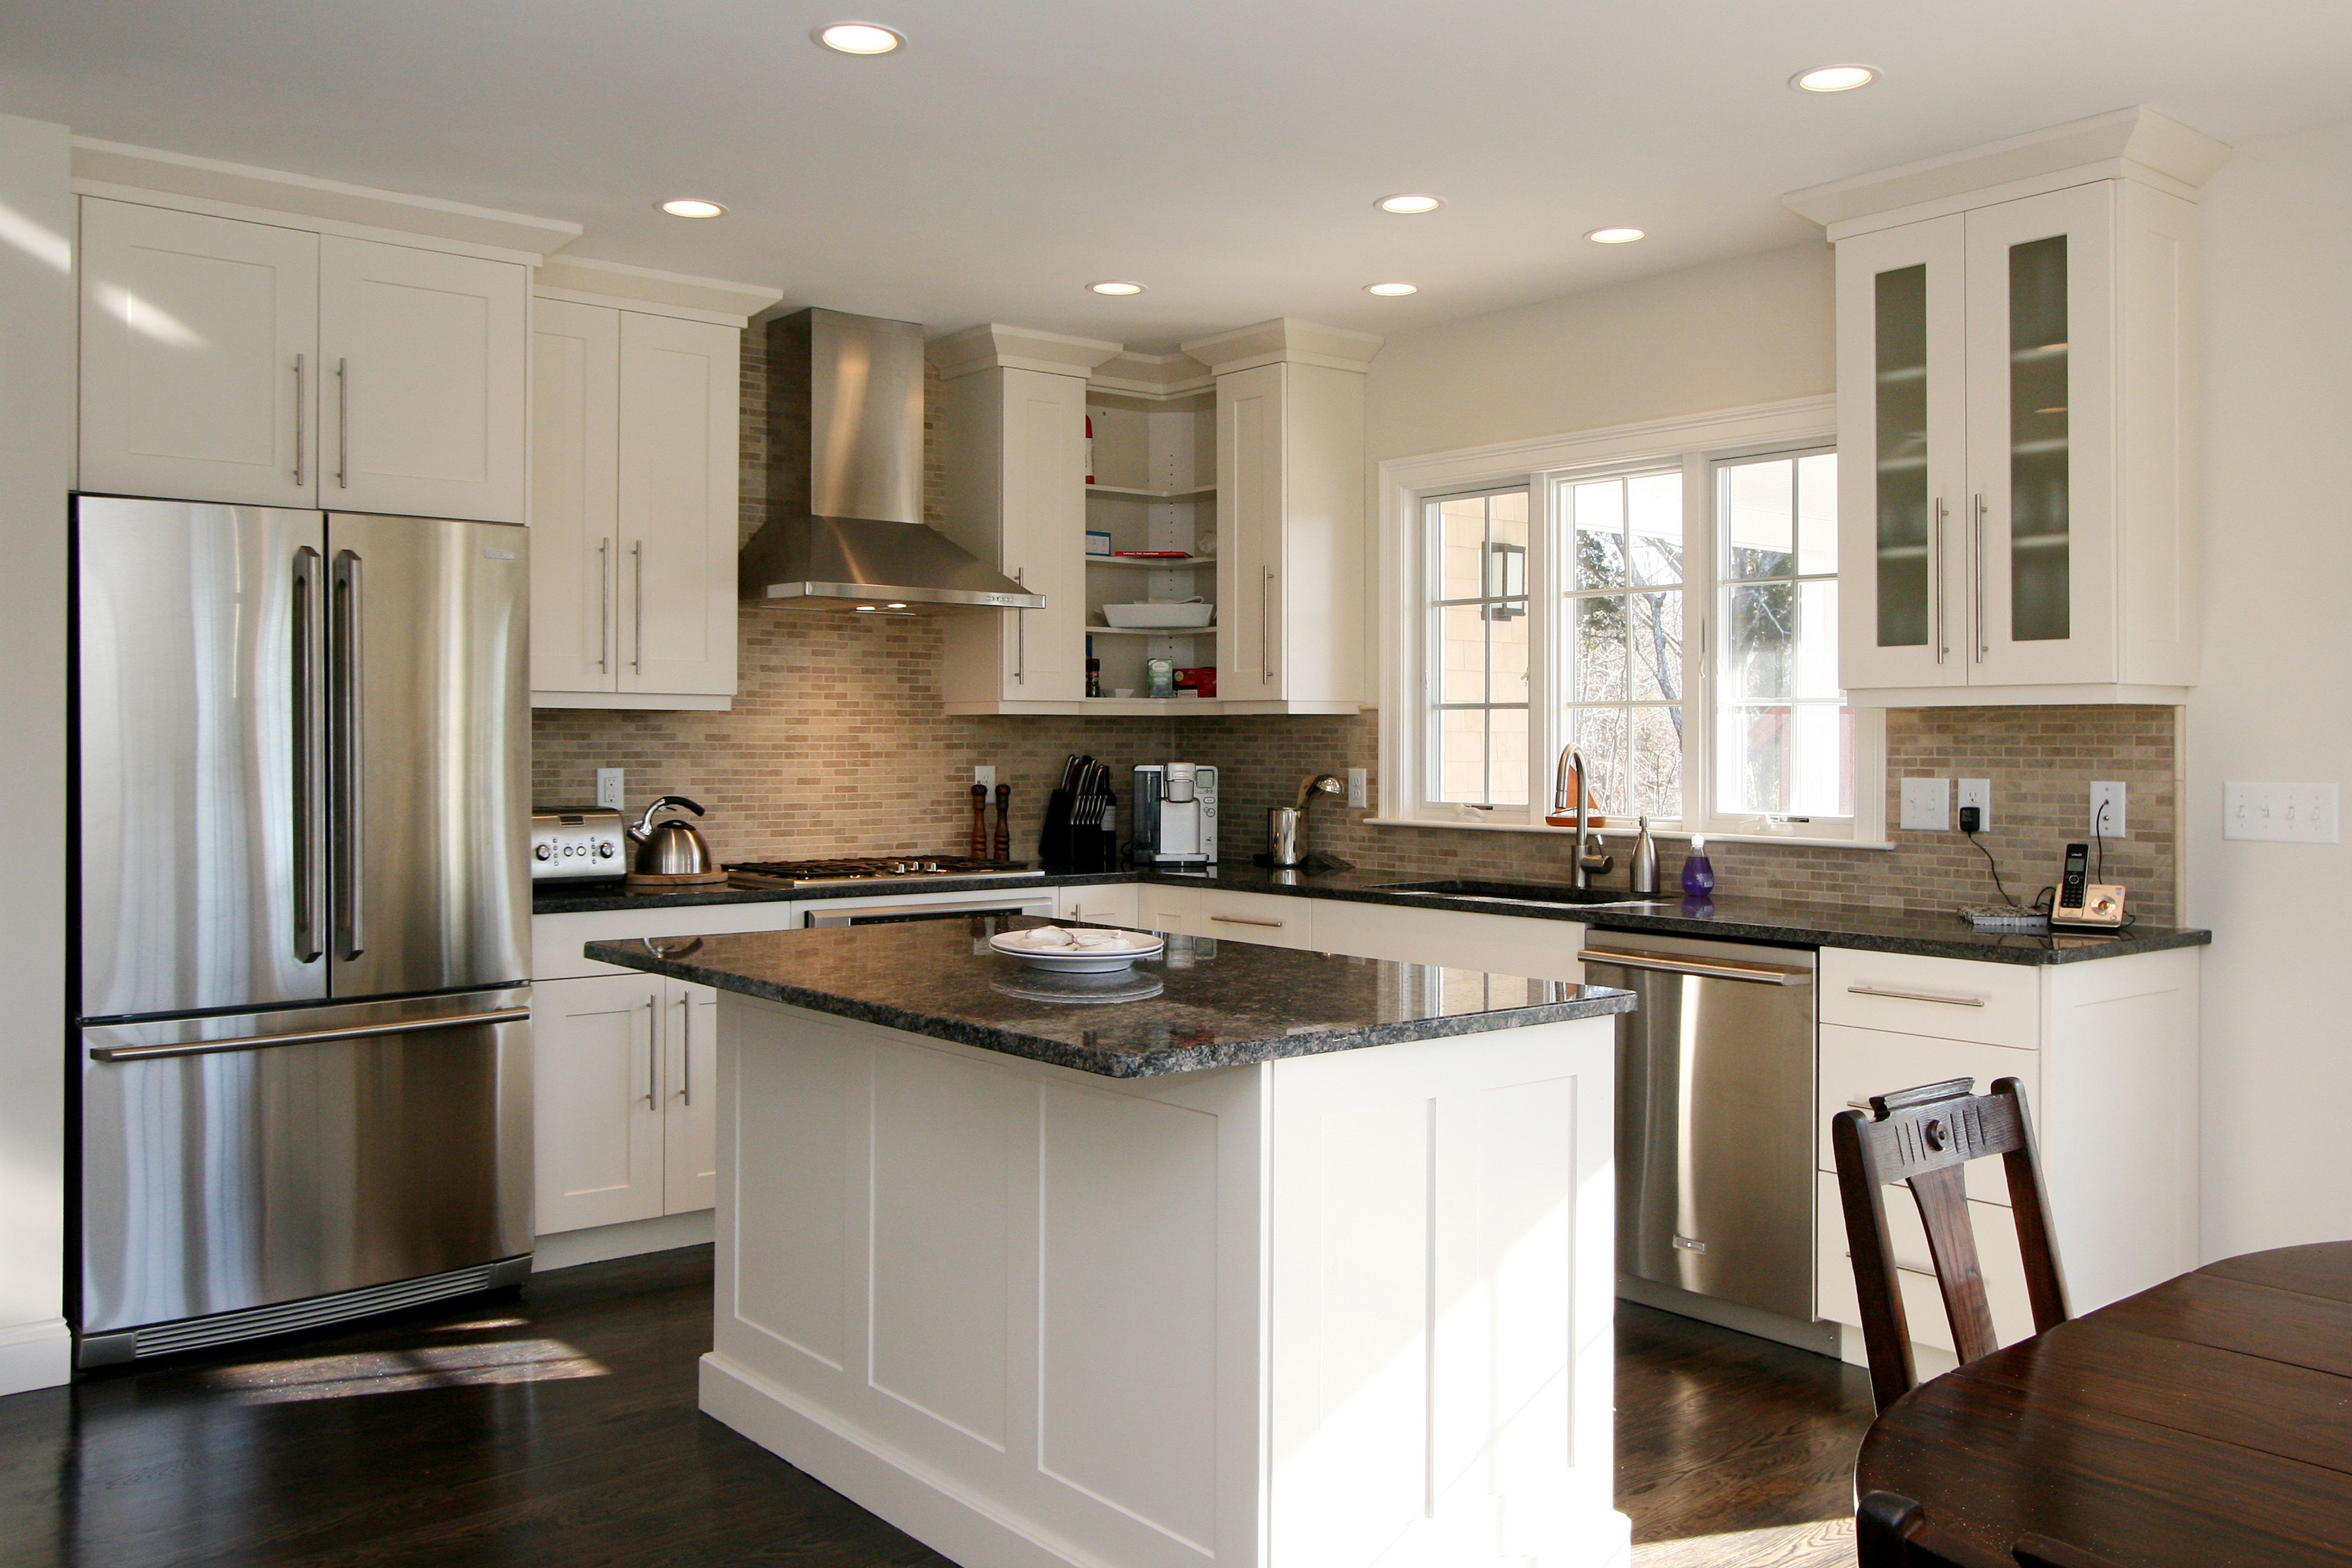 Kitchen Islands Wall Layout Beautiful Small Kitchen Plans Small Kitchen Layouts Small Kitchen Layou Small Kitchen Layouts Kitchen Layout Kitchen Designs Layout